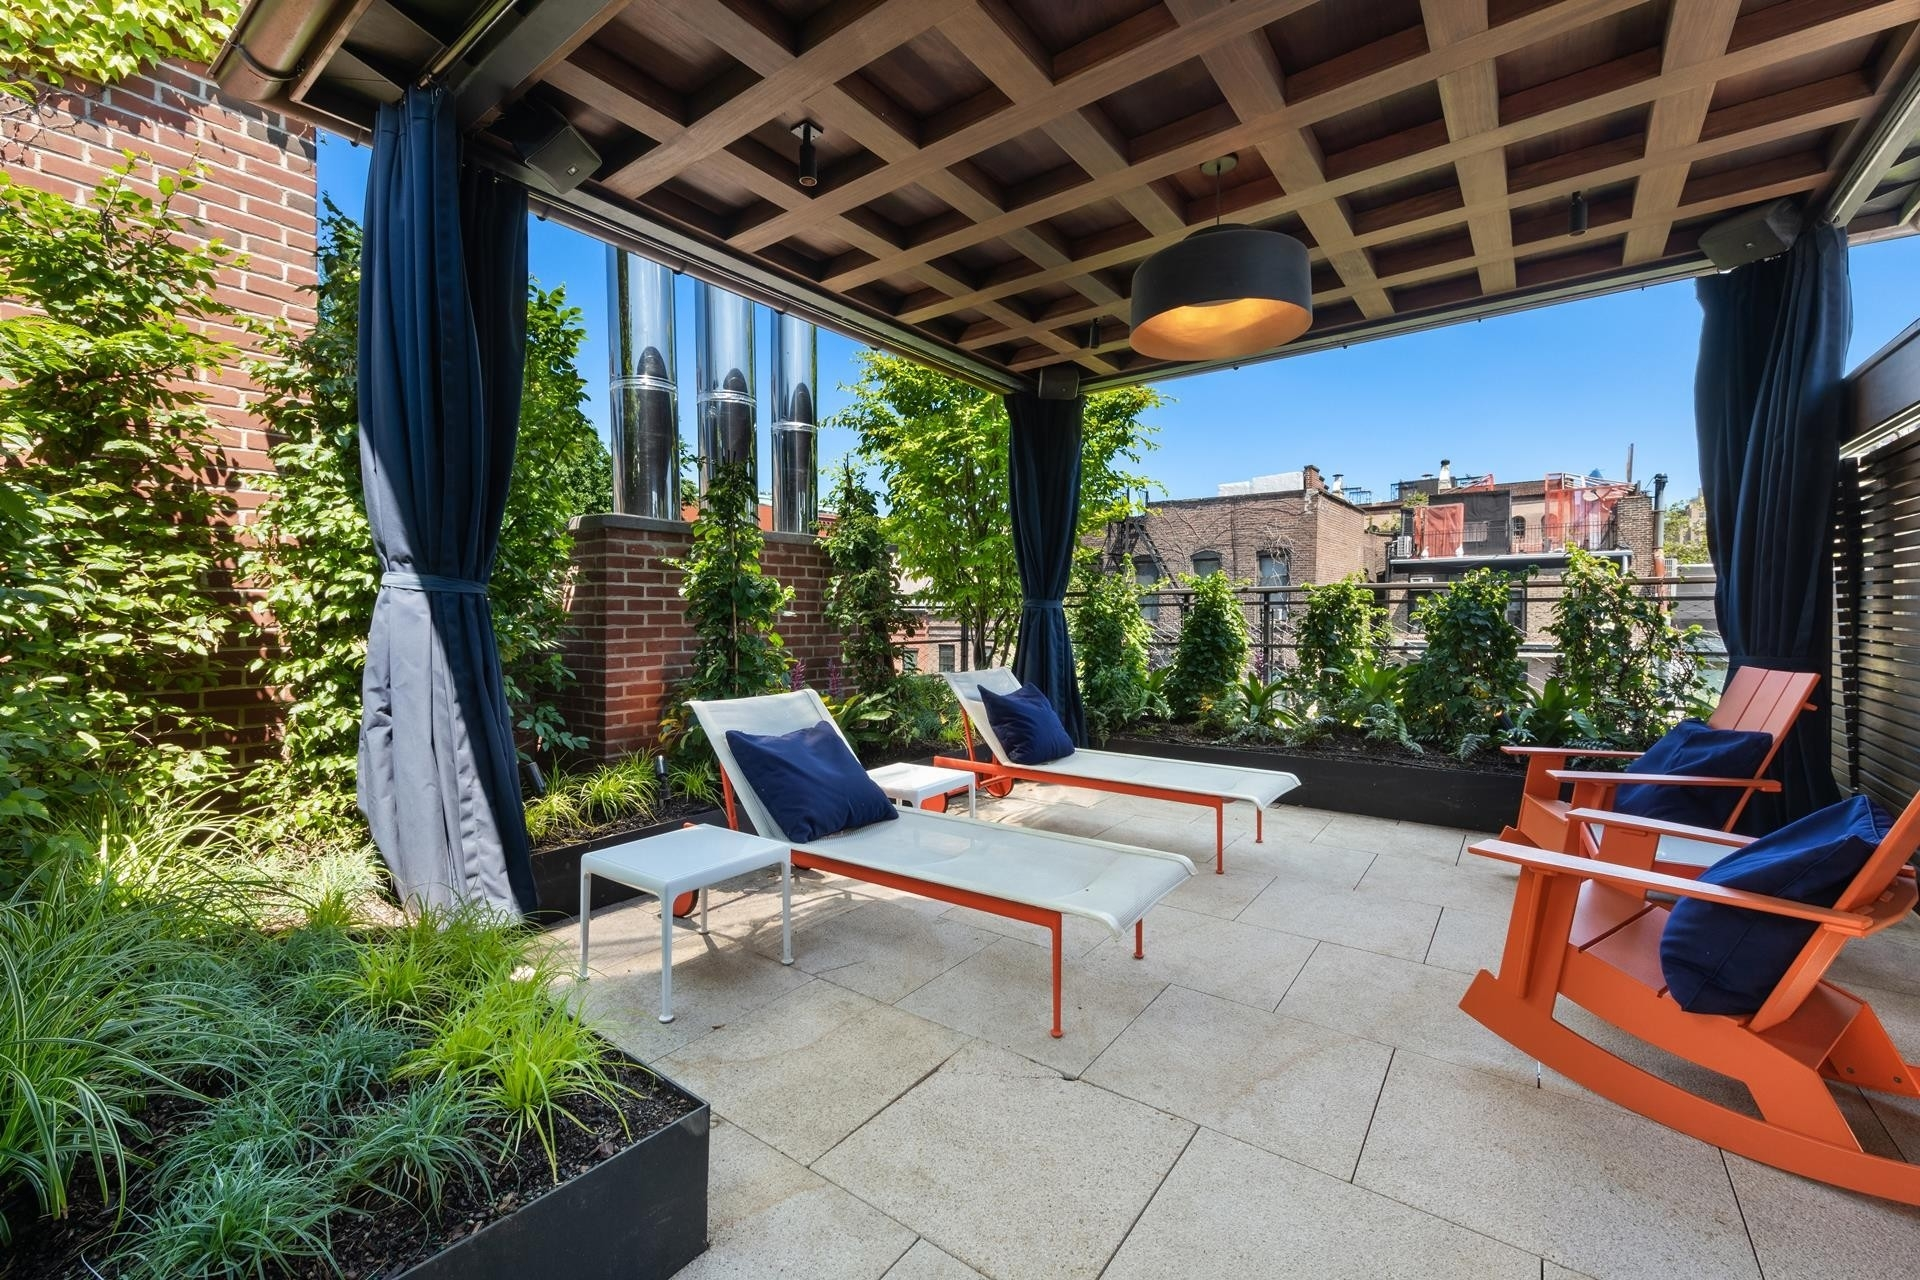 20. Single Family Townhouse for Sale at West Village, New York, NY 10014